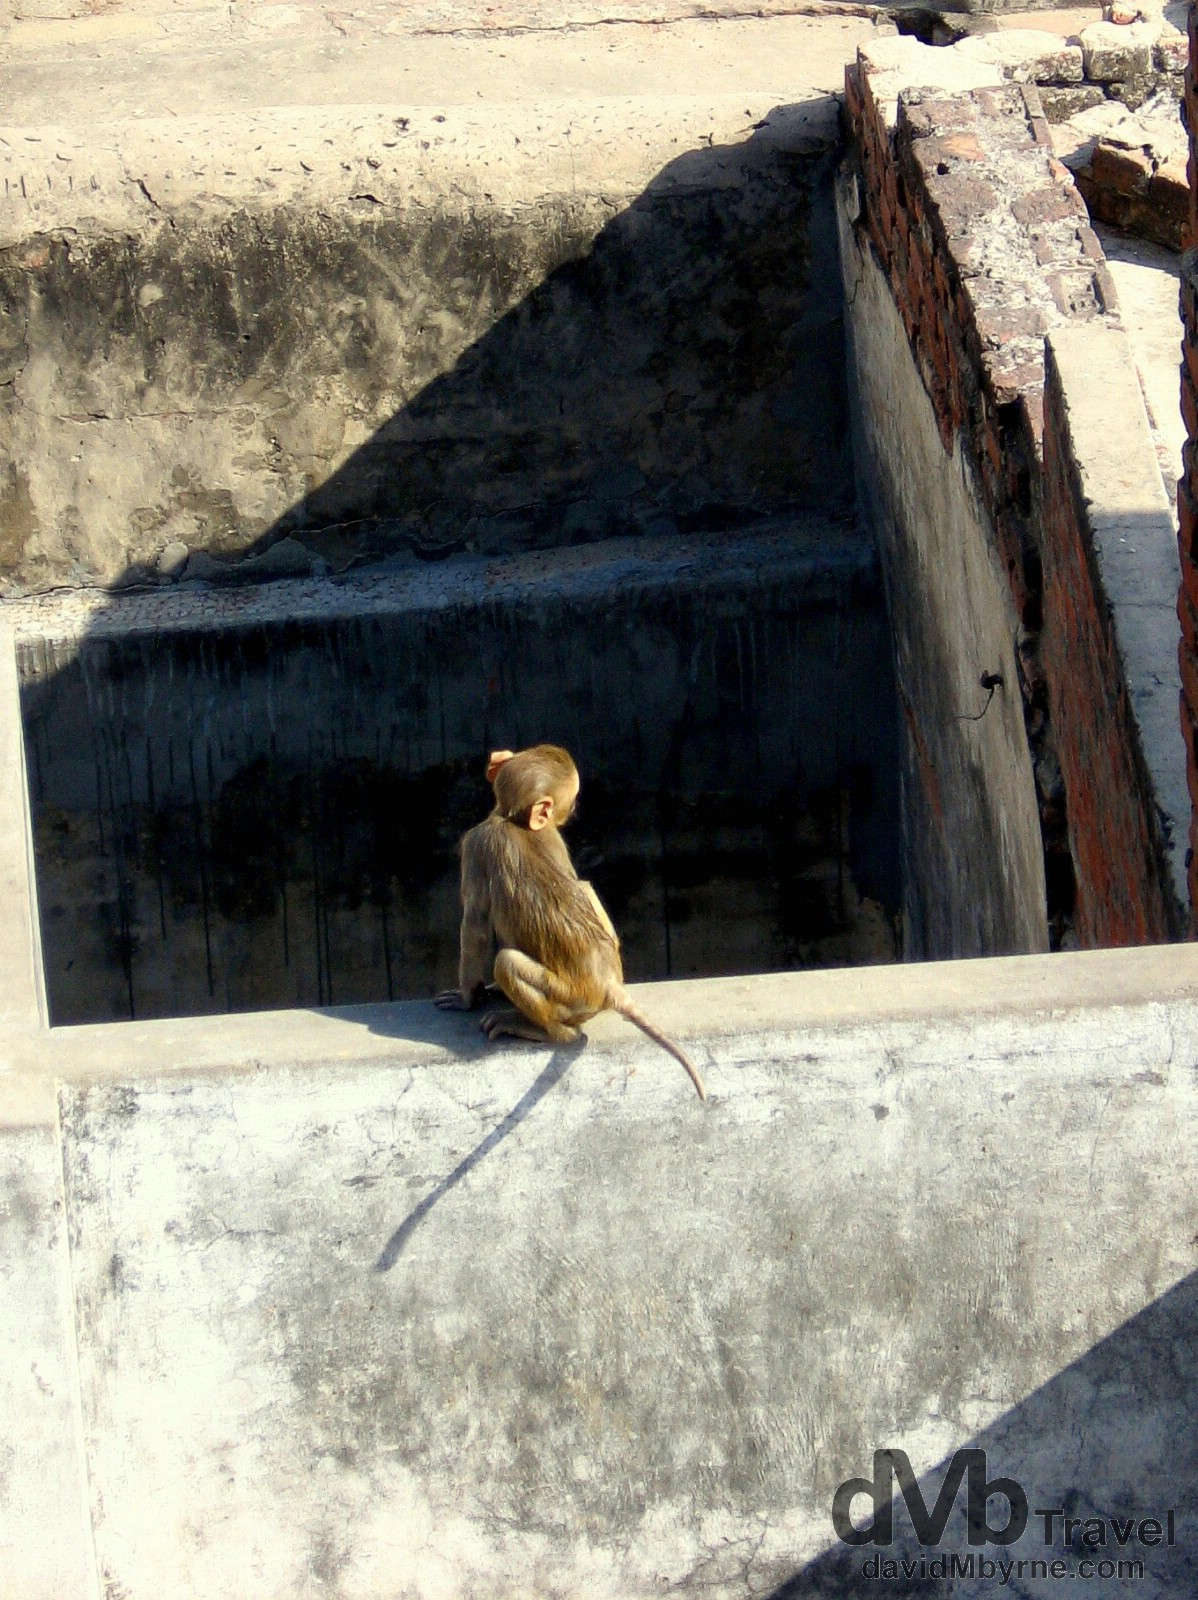 A monkey on the rooftop of a dwelling in Varanasi, India. March 18th 2008.